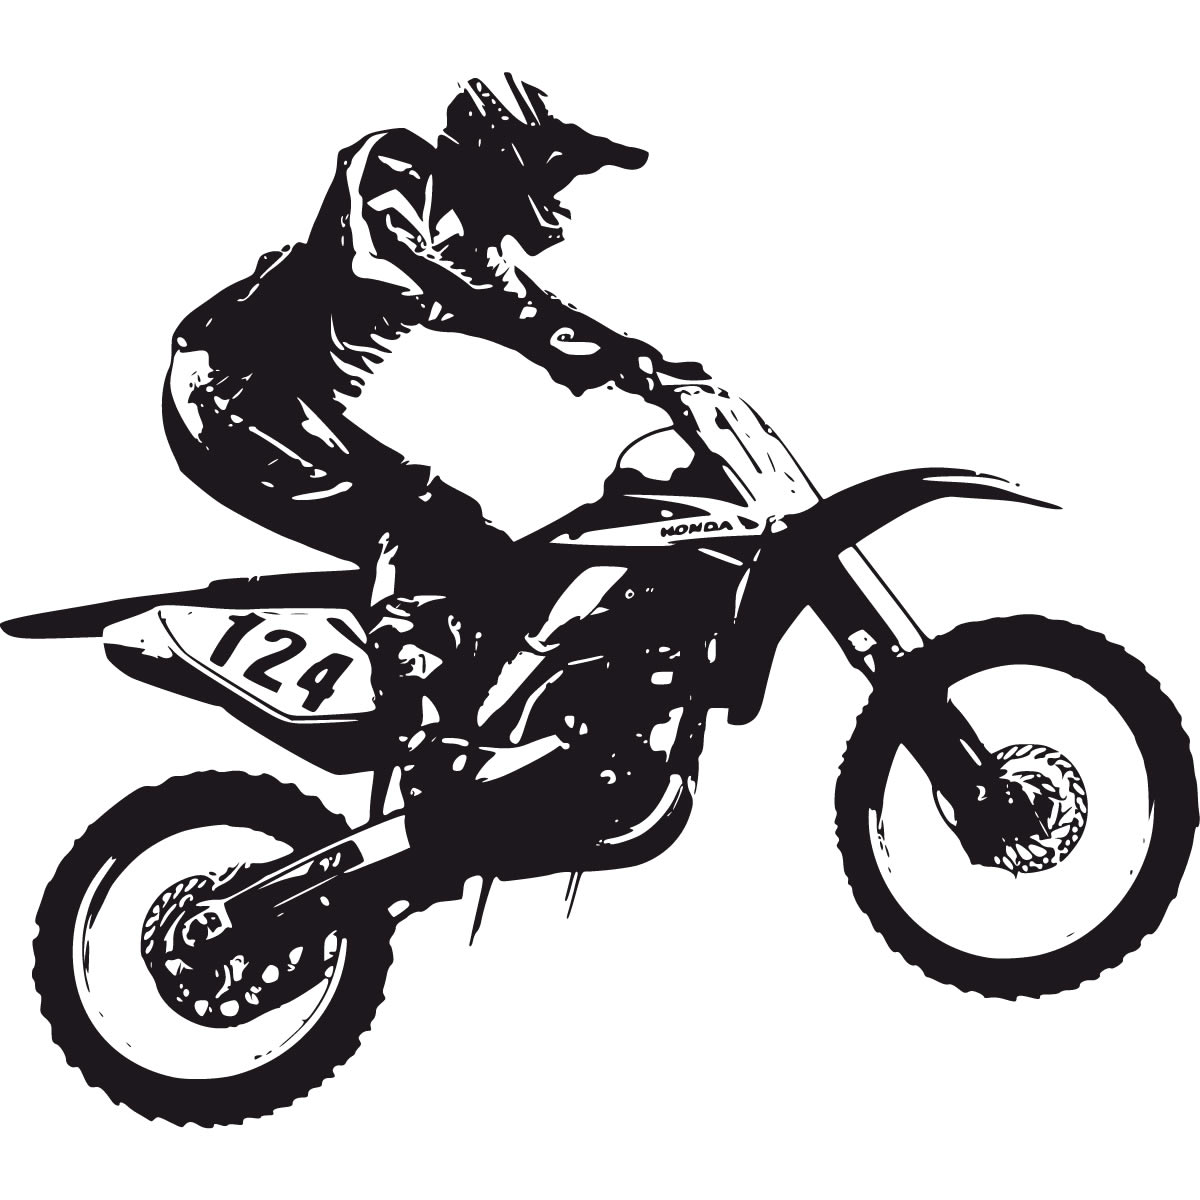 Kawasaki dirt bike clipart.